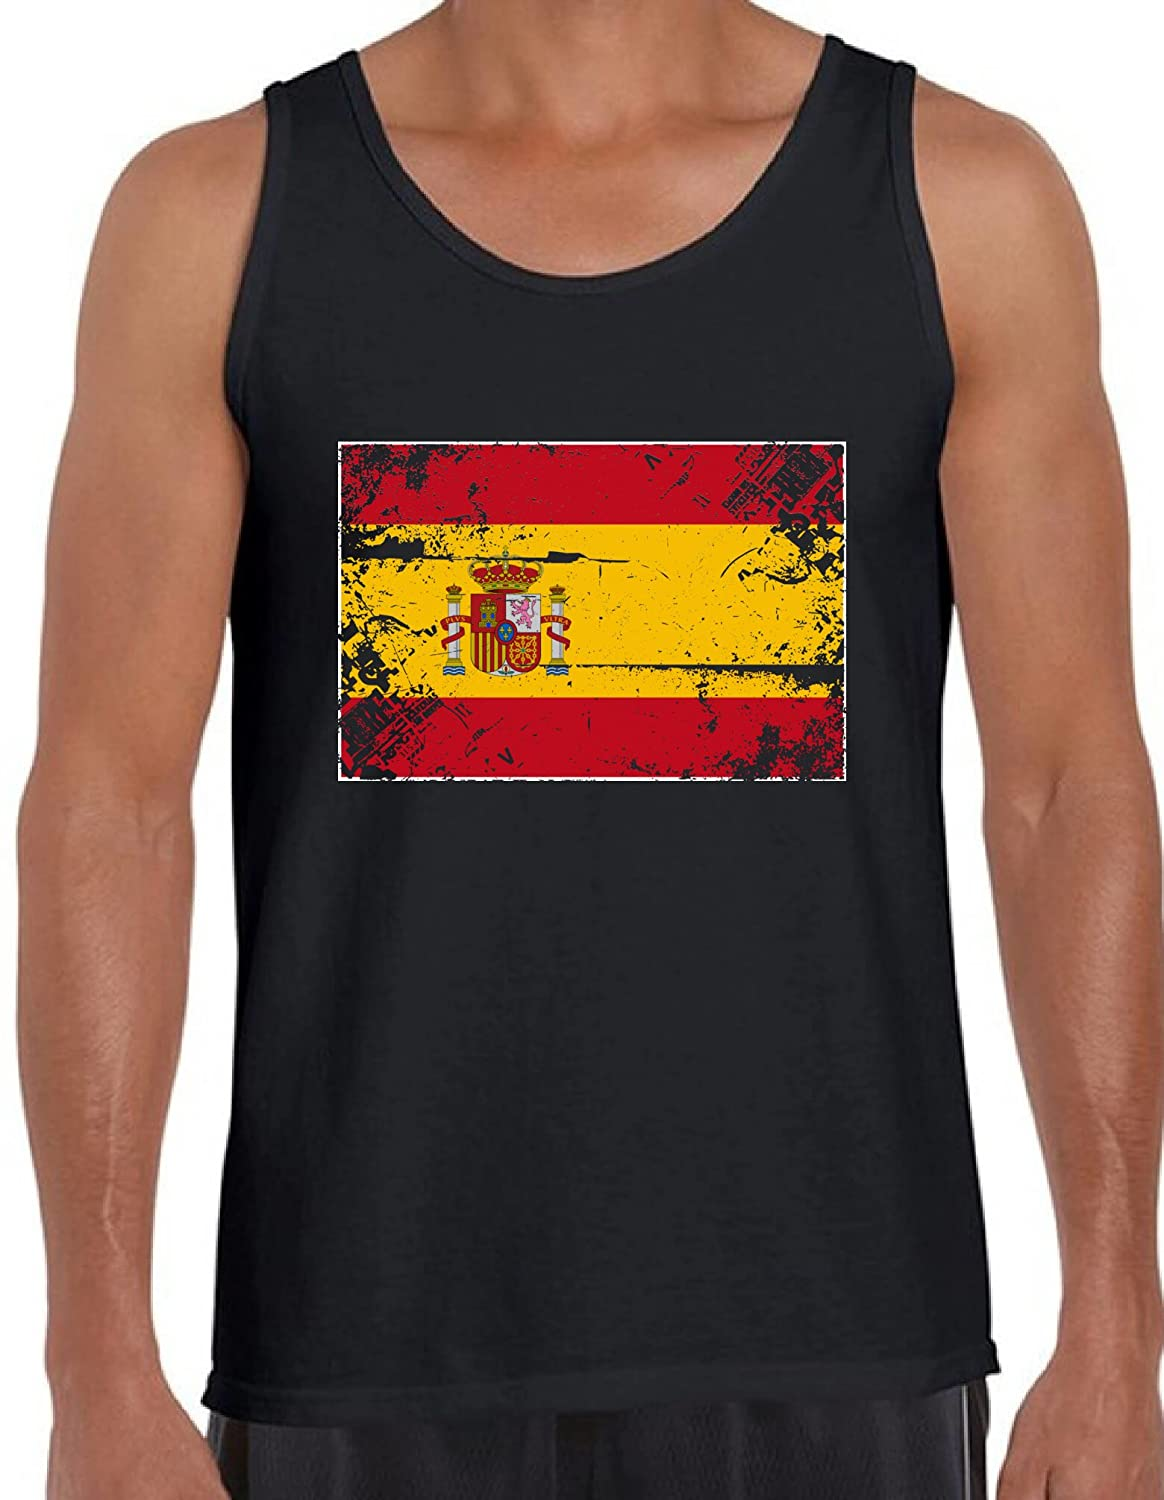 Awkward Styles Spain Flag Tanks for Men Spain Tank Top from Spain Gifts for Him